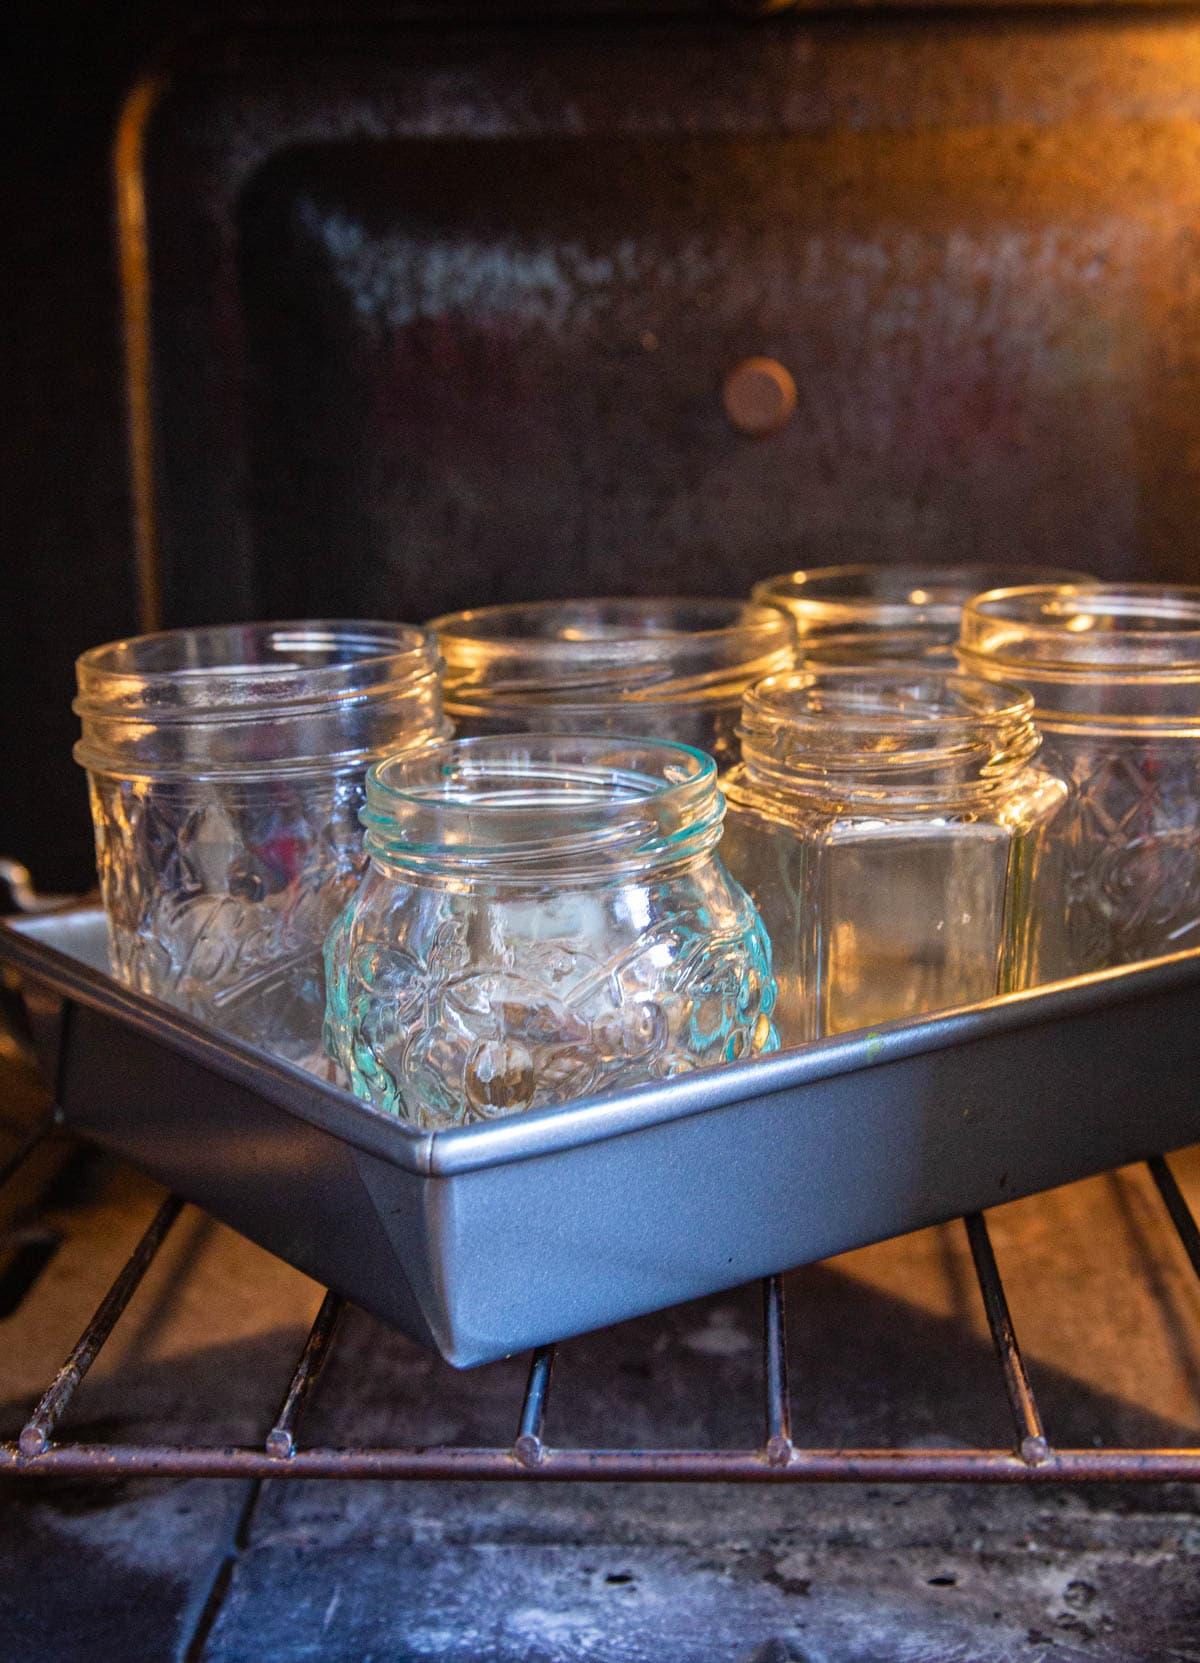 A baking tray of jam jars on a shelf in the oven